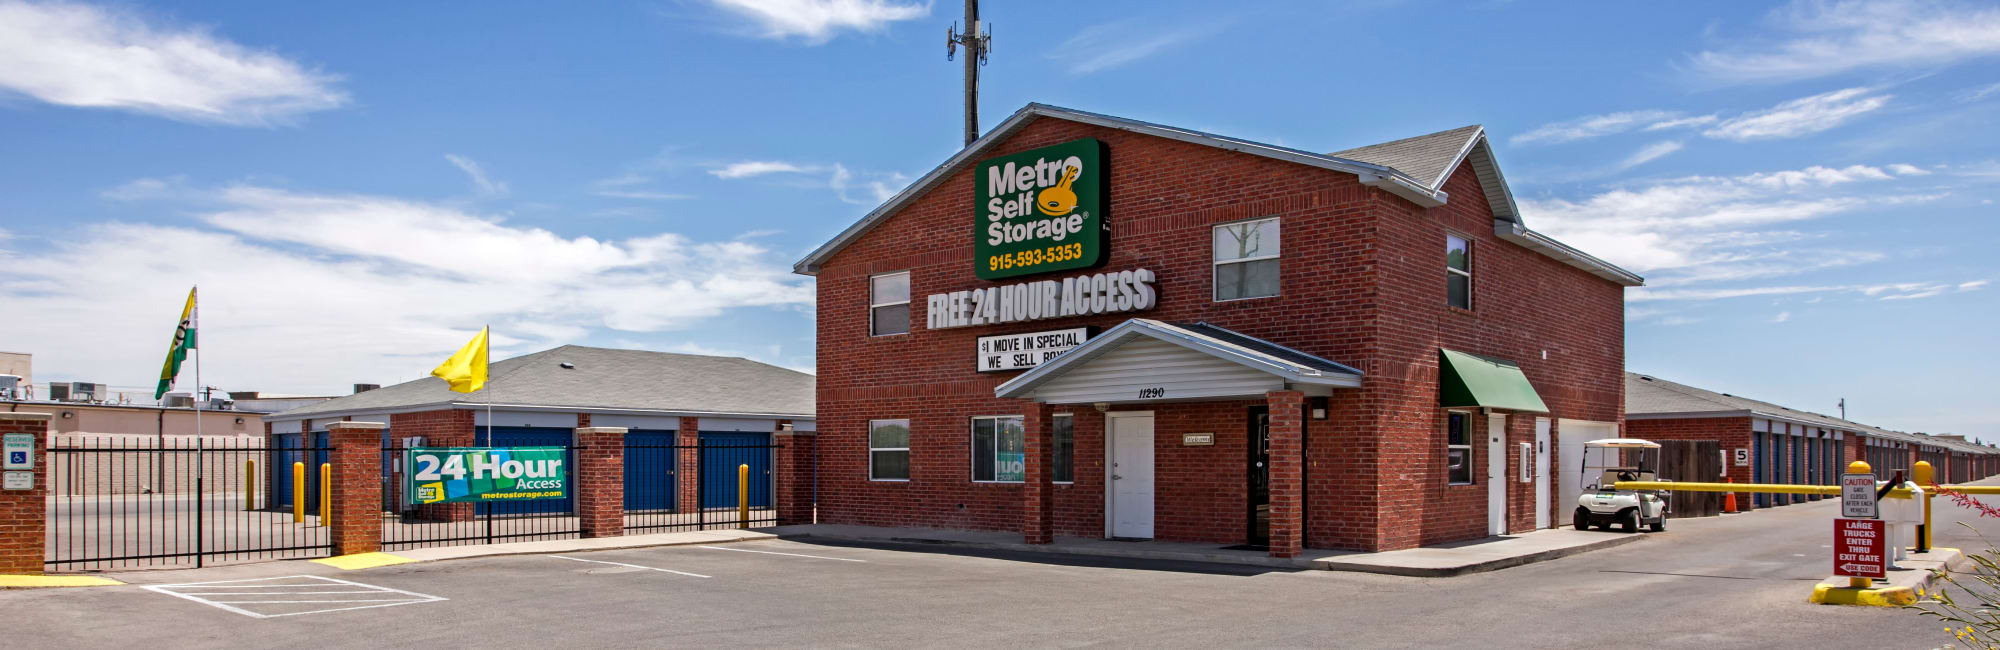 Metro Self Storage in El Paso, TX